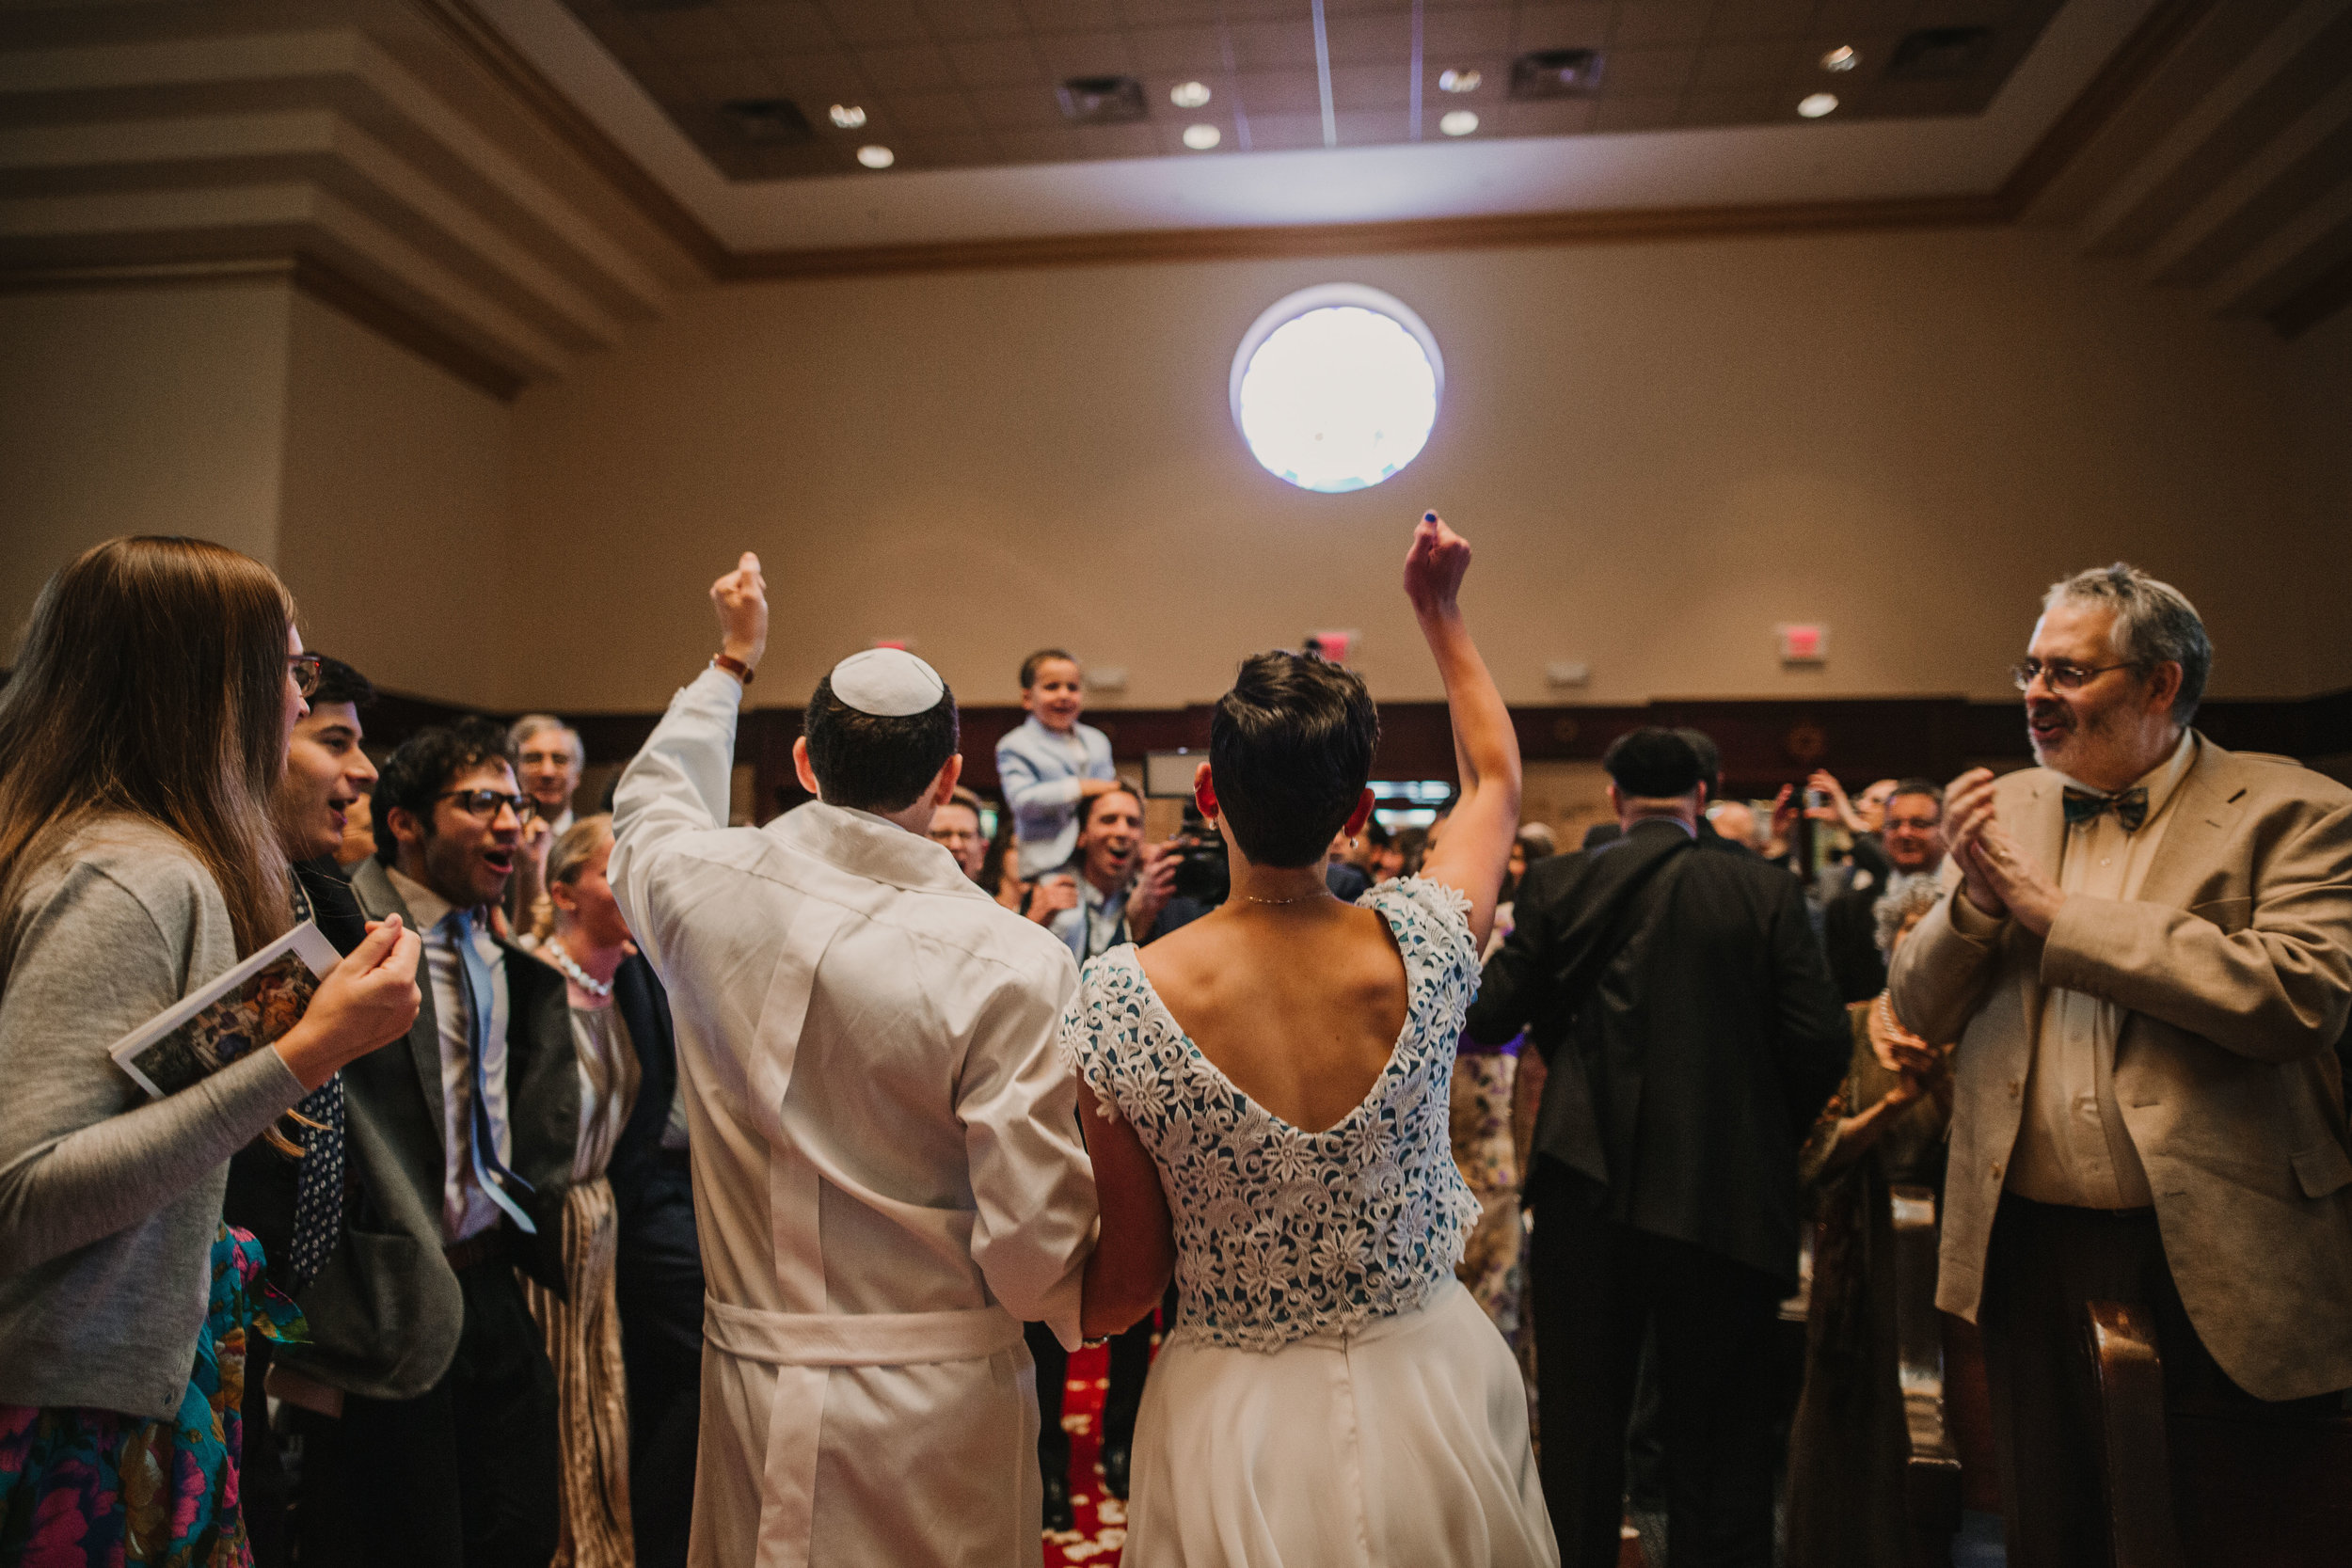 - From the moment after their first kiss, it was a full on party until the last moments of the day. The couple was danced back down the aisle, their Horah was FULL of energy, and it included a shtick - when wedding guests perform skits and pranks in the middle of a packed dance floor.